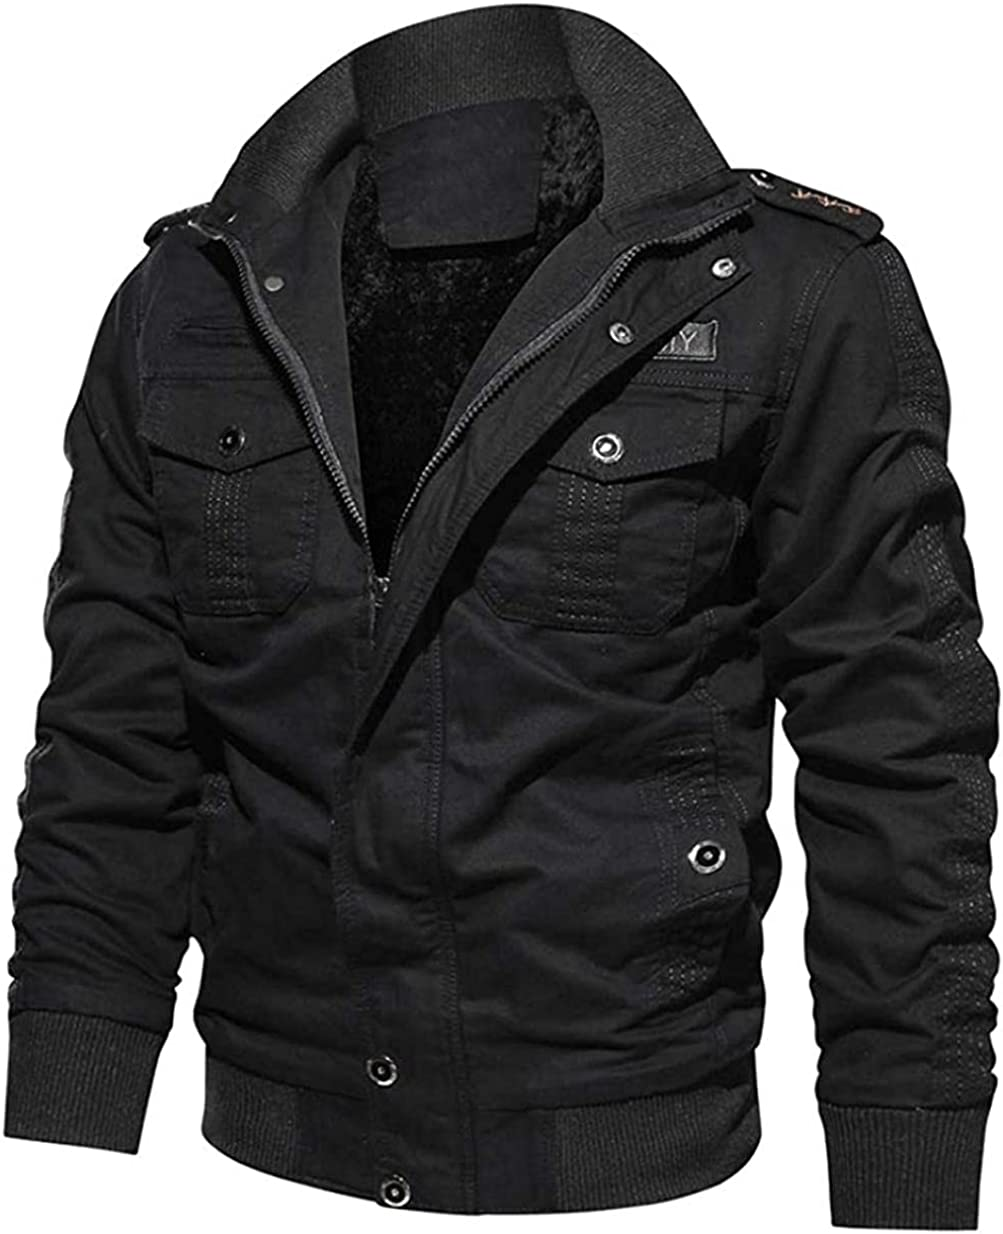 Men's Gifts Winter Military Jacket Casual Coat Stand Max 45% OFF Fleece Collar Cot